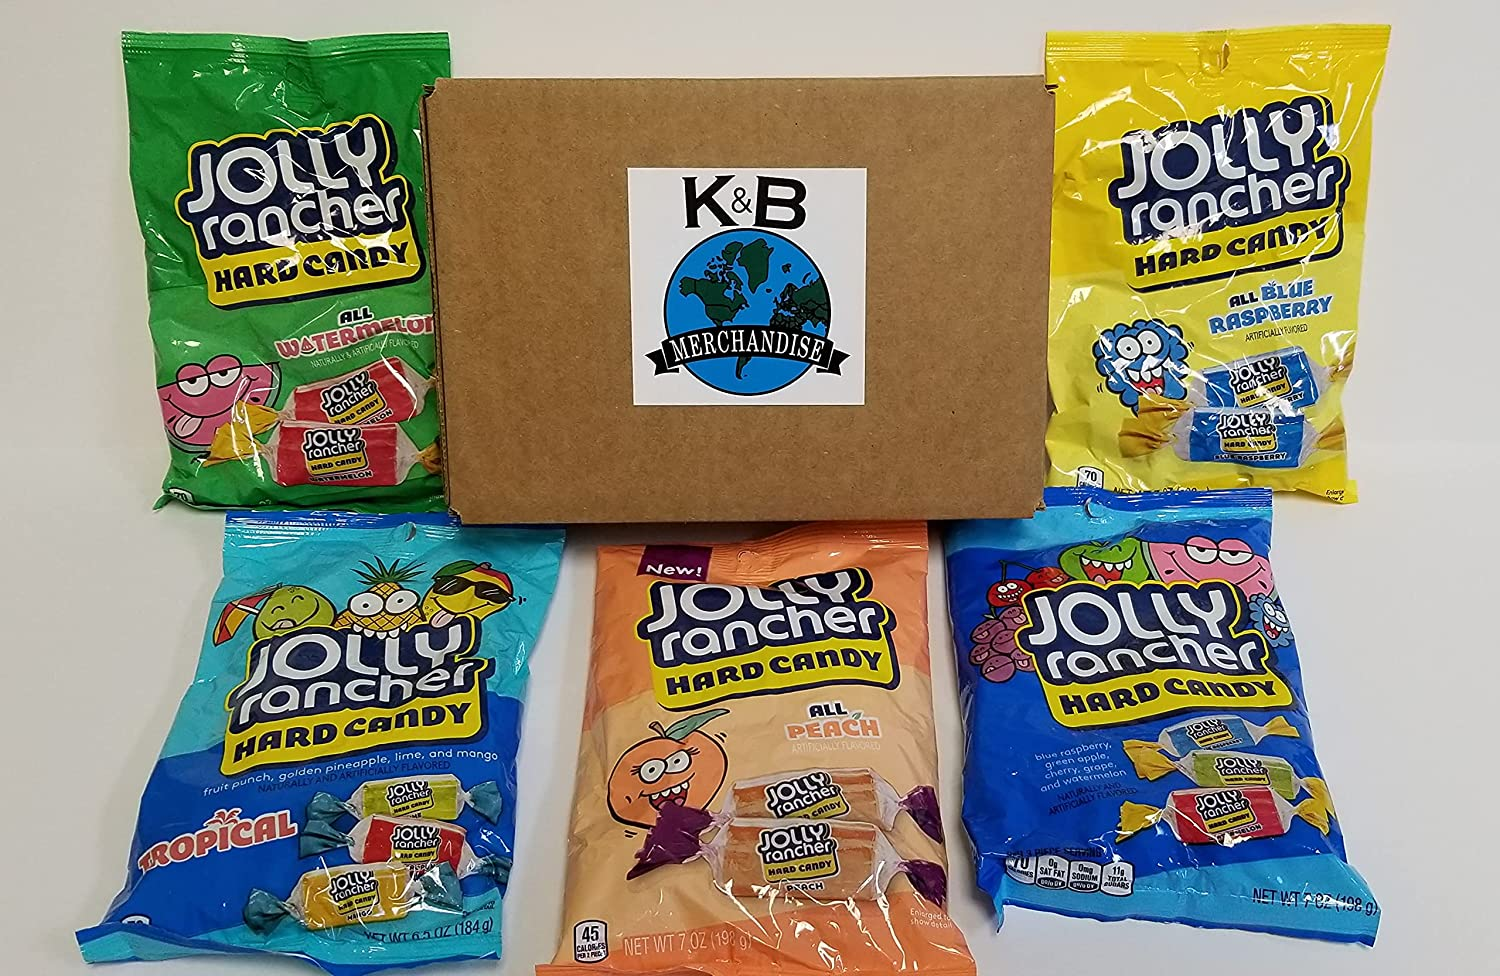 Jolly Rancher Hard Candy Variety Pack of 5 Tasty Assorted Fruity Flavors: Peach 7oz, Blue Raspberry 7oz, Watermelon 7oz, Tropical 6.5oz and Traditional 7oz = 34.5 Ounces in Total! Sealed and Packed in a K&B Merchandise Sturdy Box